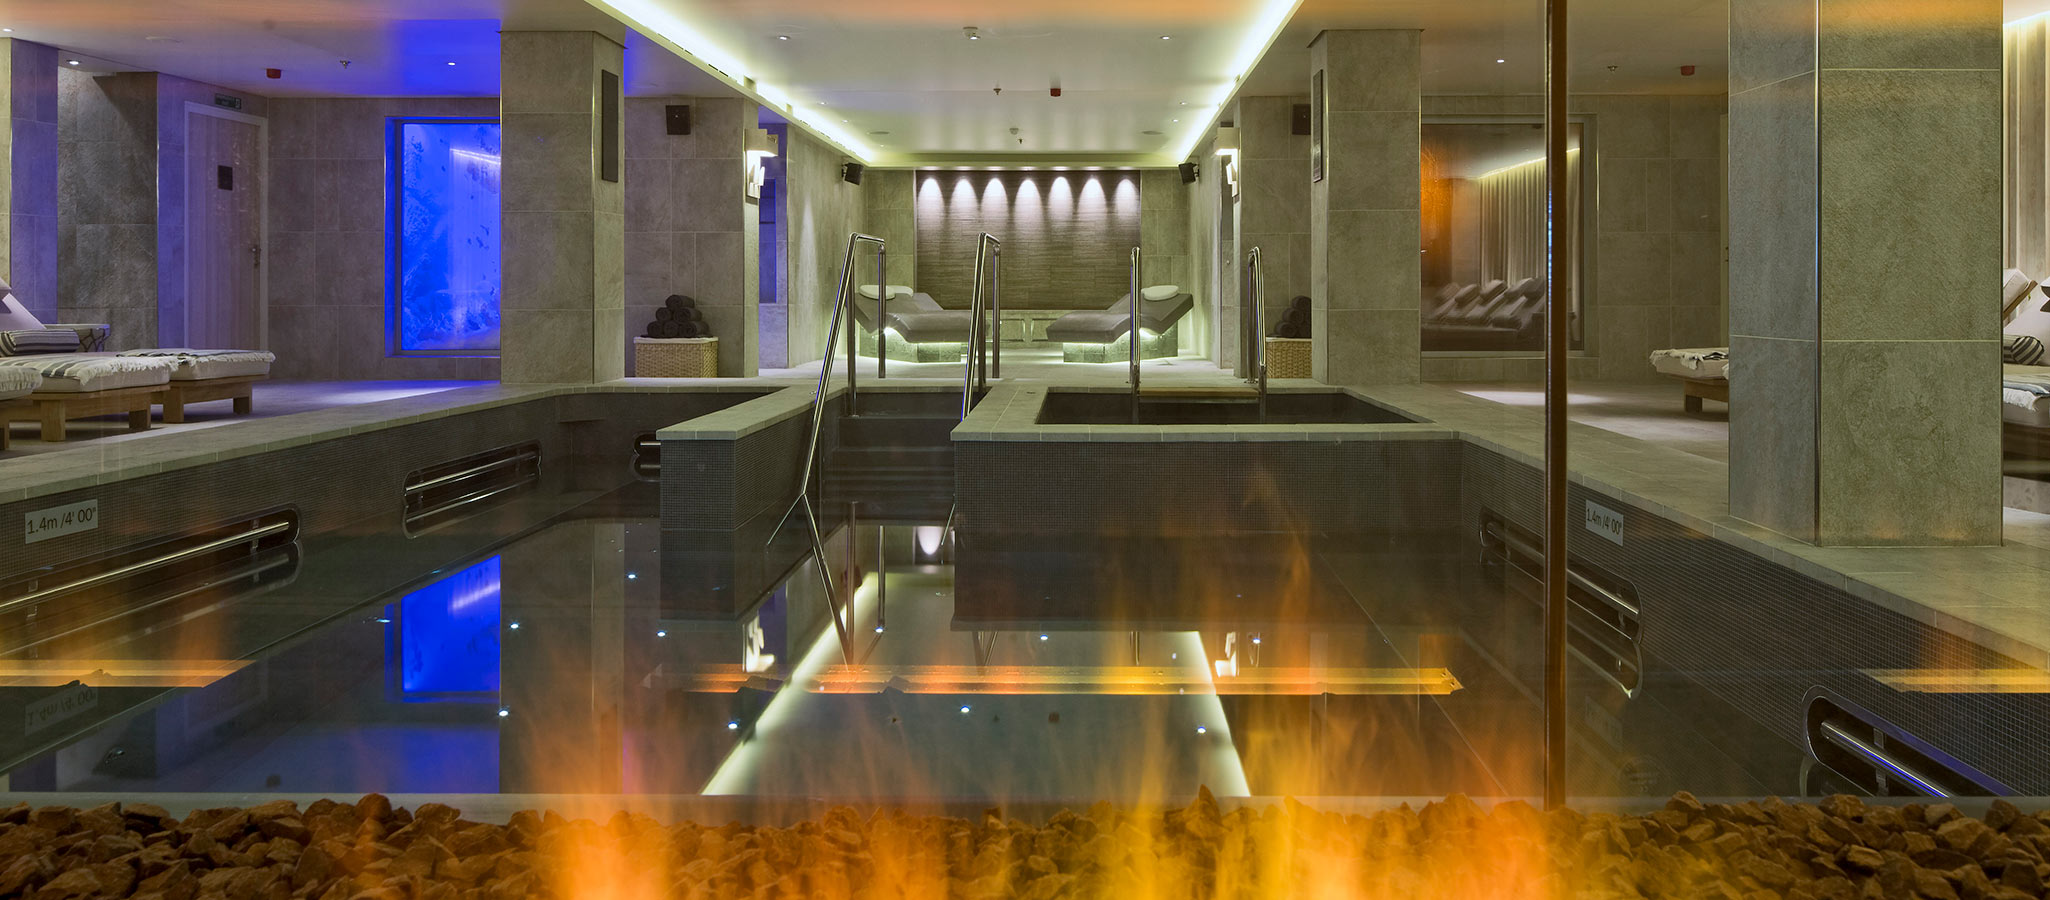 With a spa area of over 1,000 square meters on many ships, relaxation is accommodated for following a successful meeting.